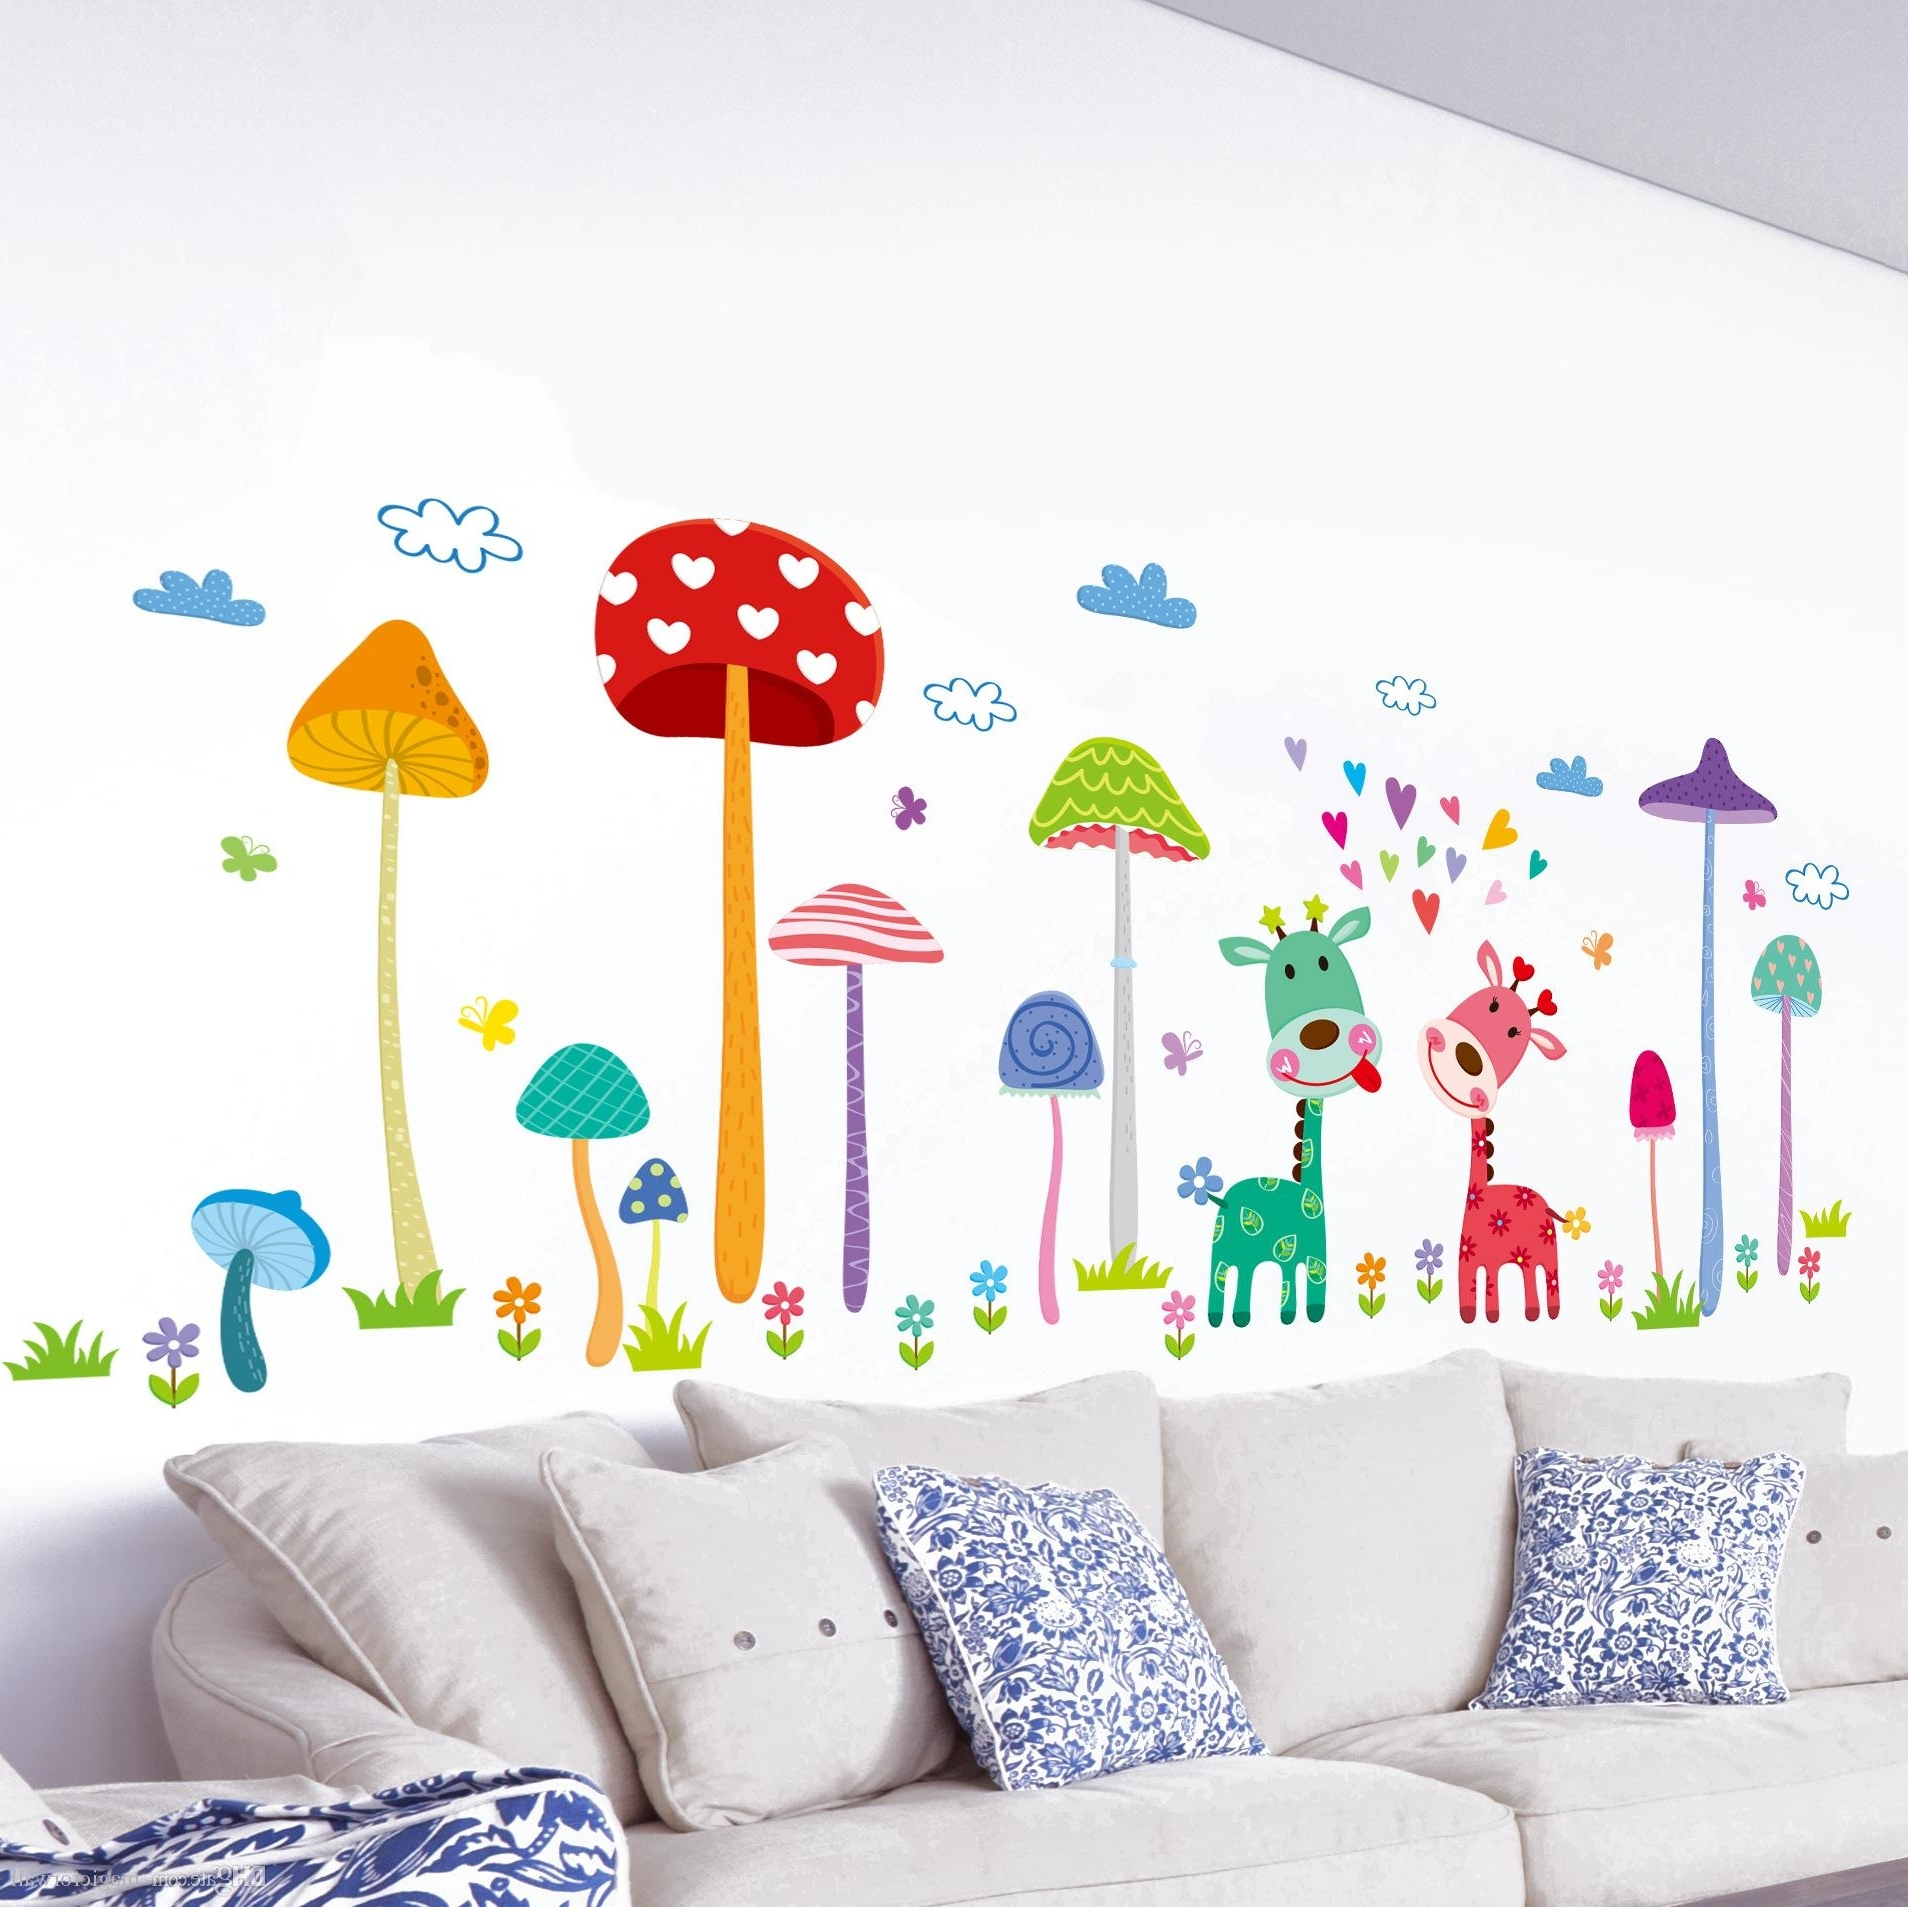 Kids Wall Art Pertaining To 2017 Forest Mushroom Deer Animals Home Wall Art Mural Decor Kids Babies (Gallery 1 of 15)